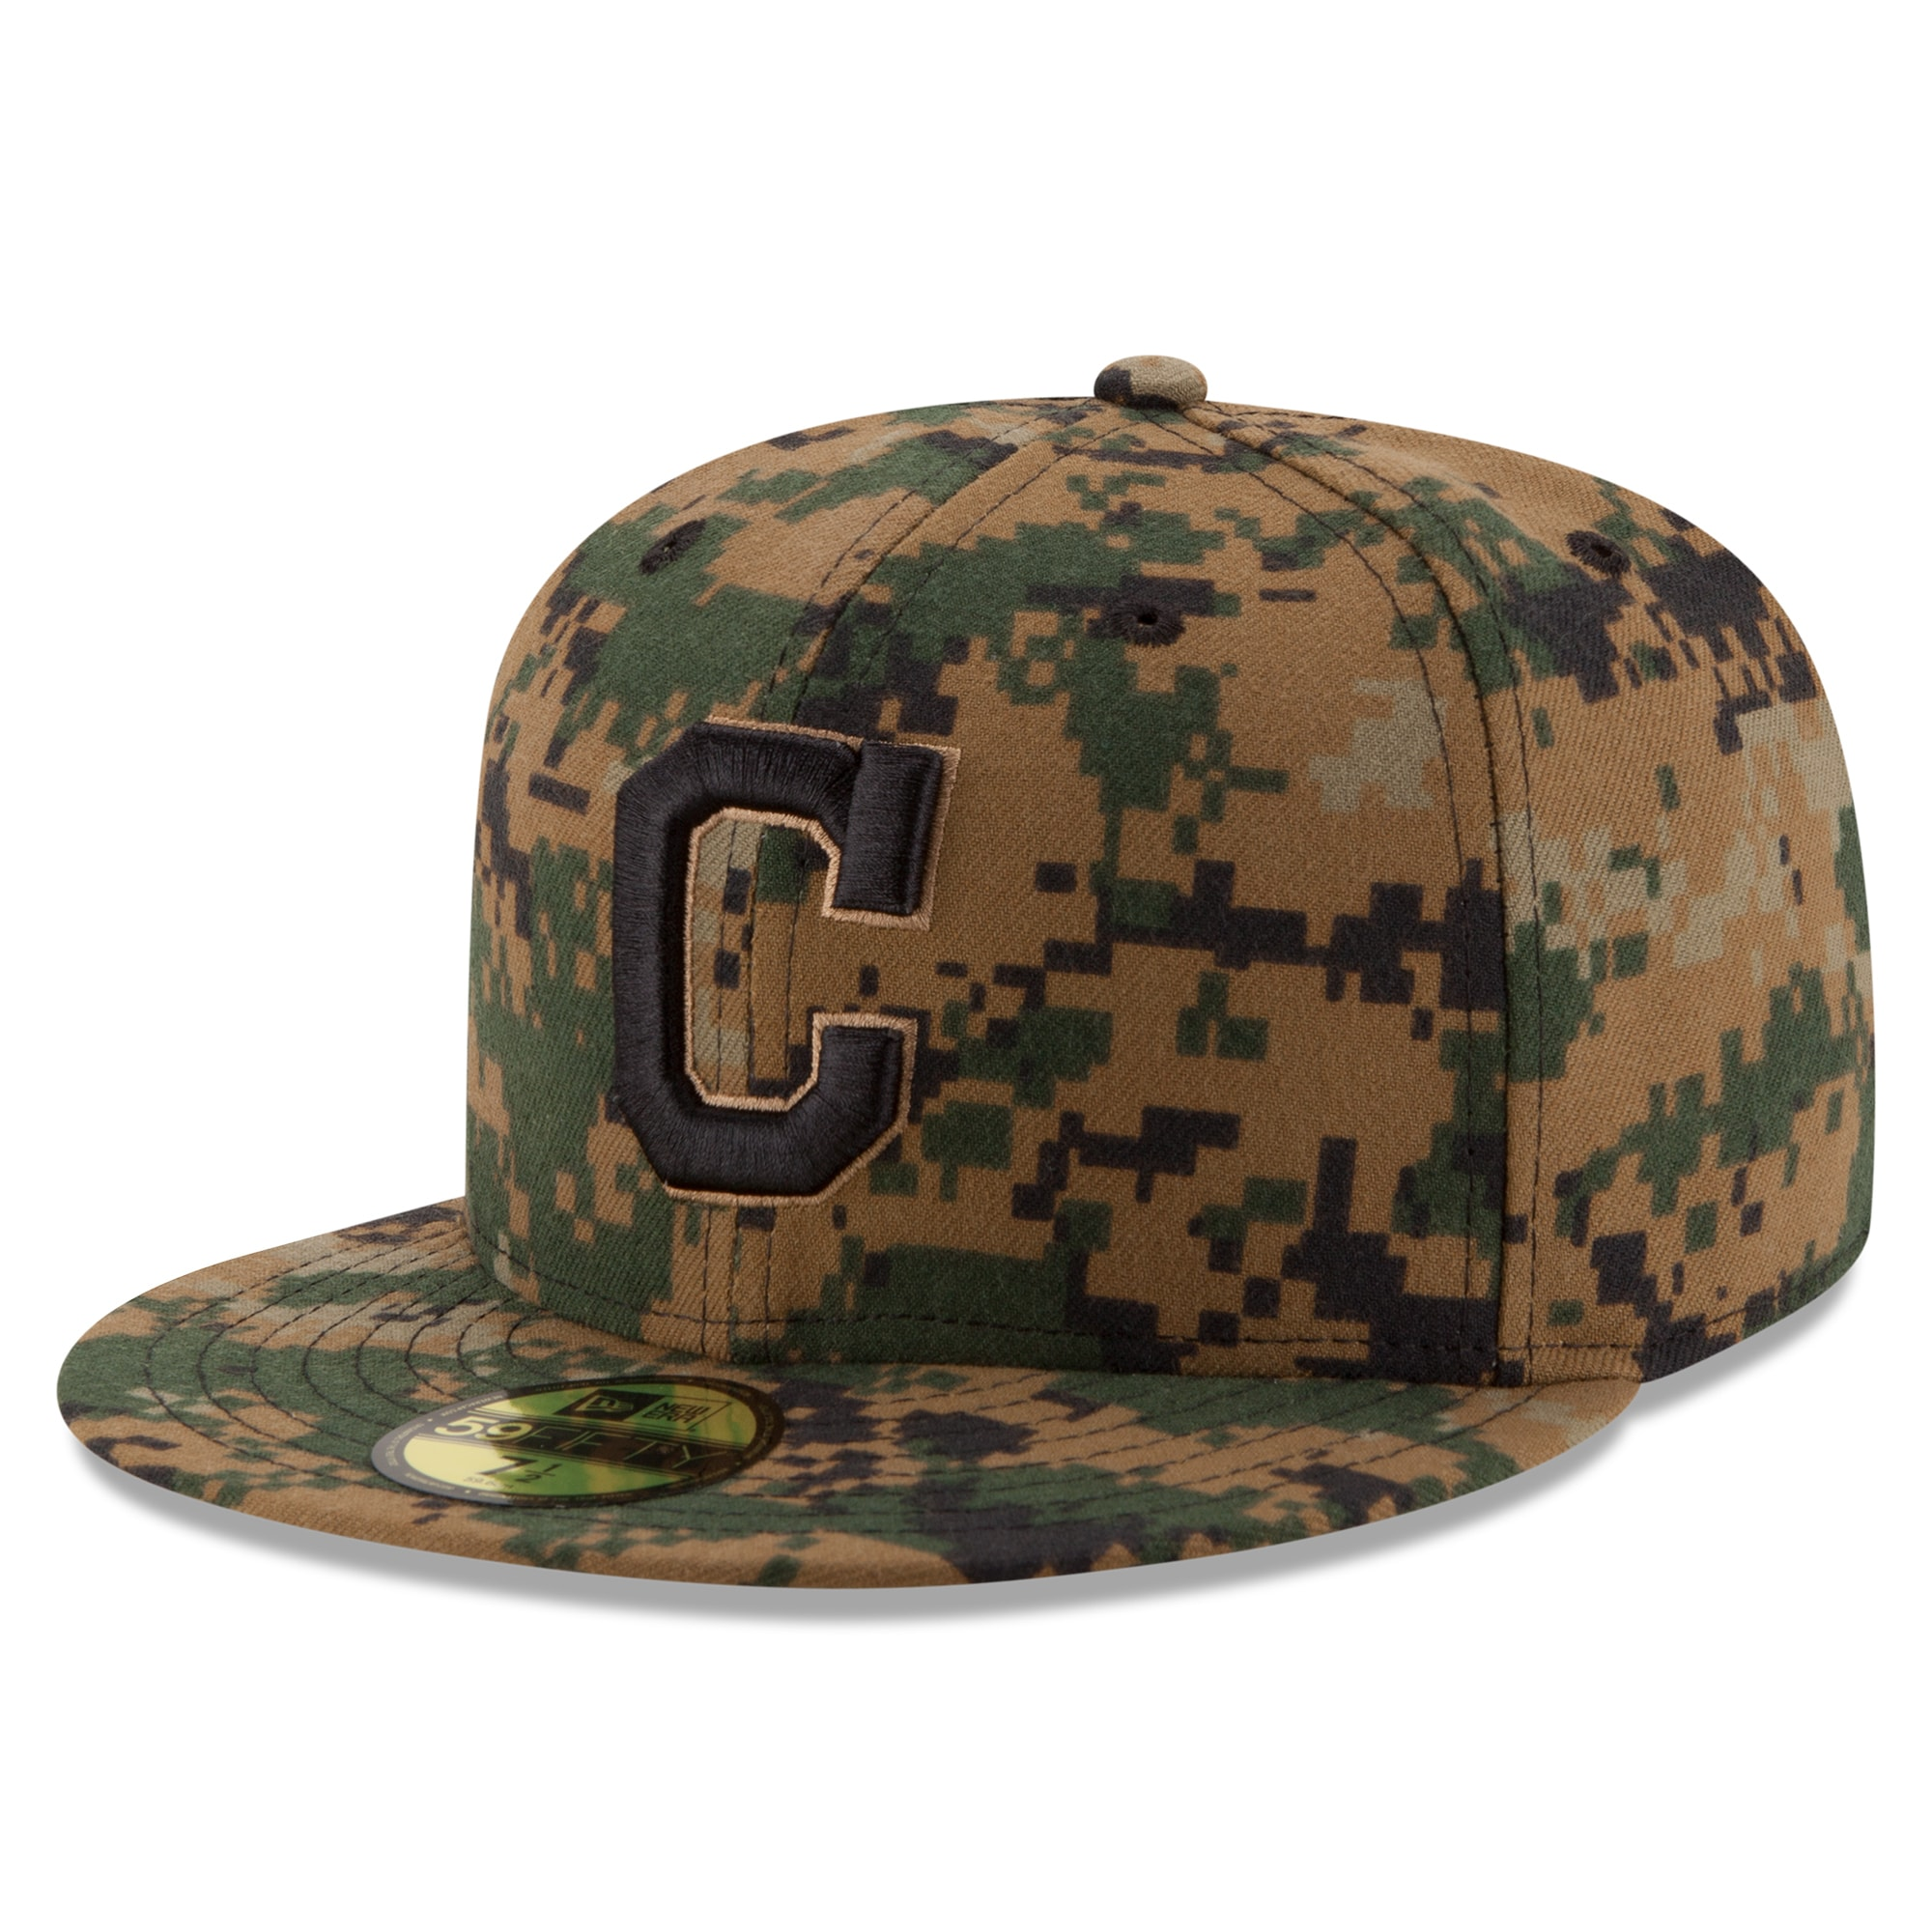 Cleveland Indians New Era 2016 Memorial Day 59FIFTY Fitted Hat - Digital Camo